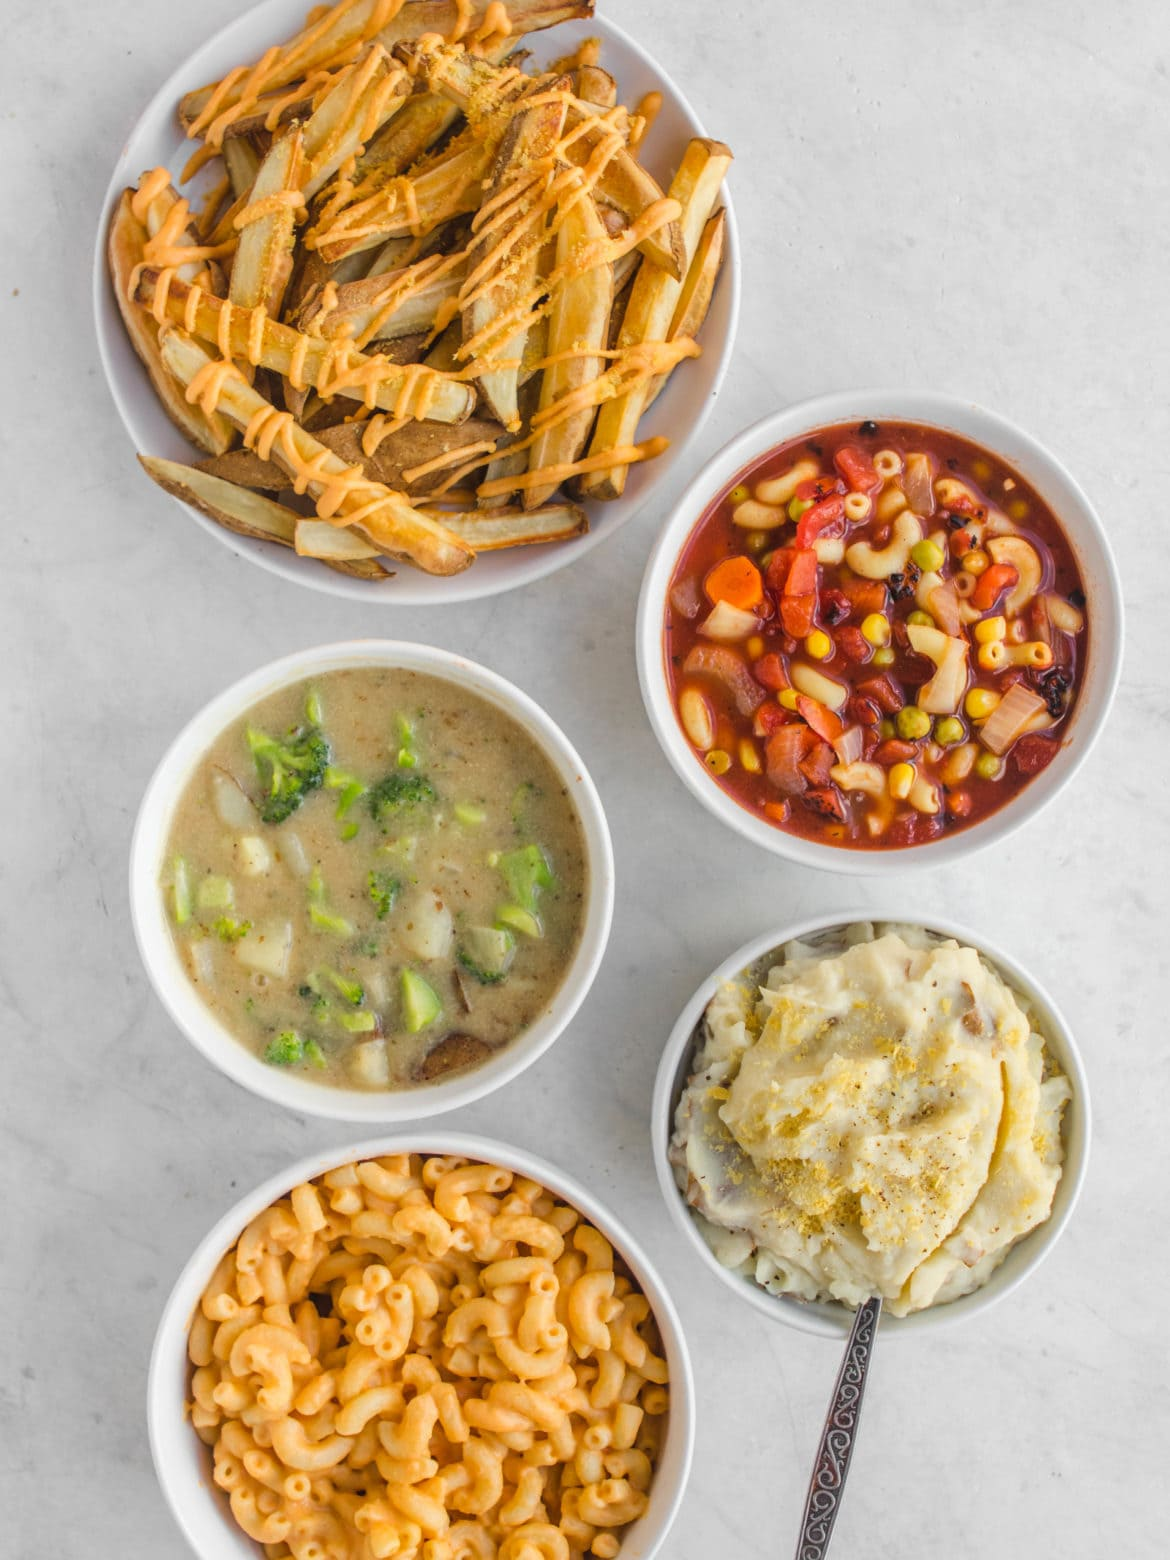 5 Budget-Friendly Vegan Comfort Food Recipes Under $2 - From My Bowl